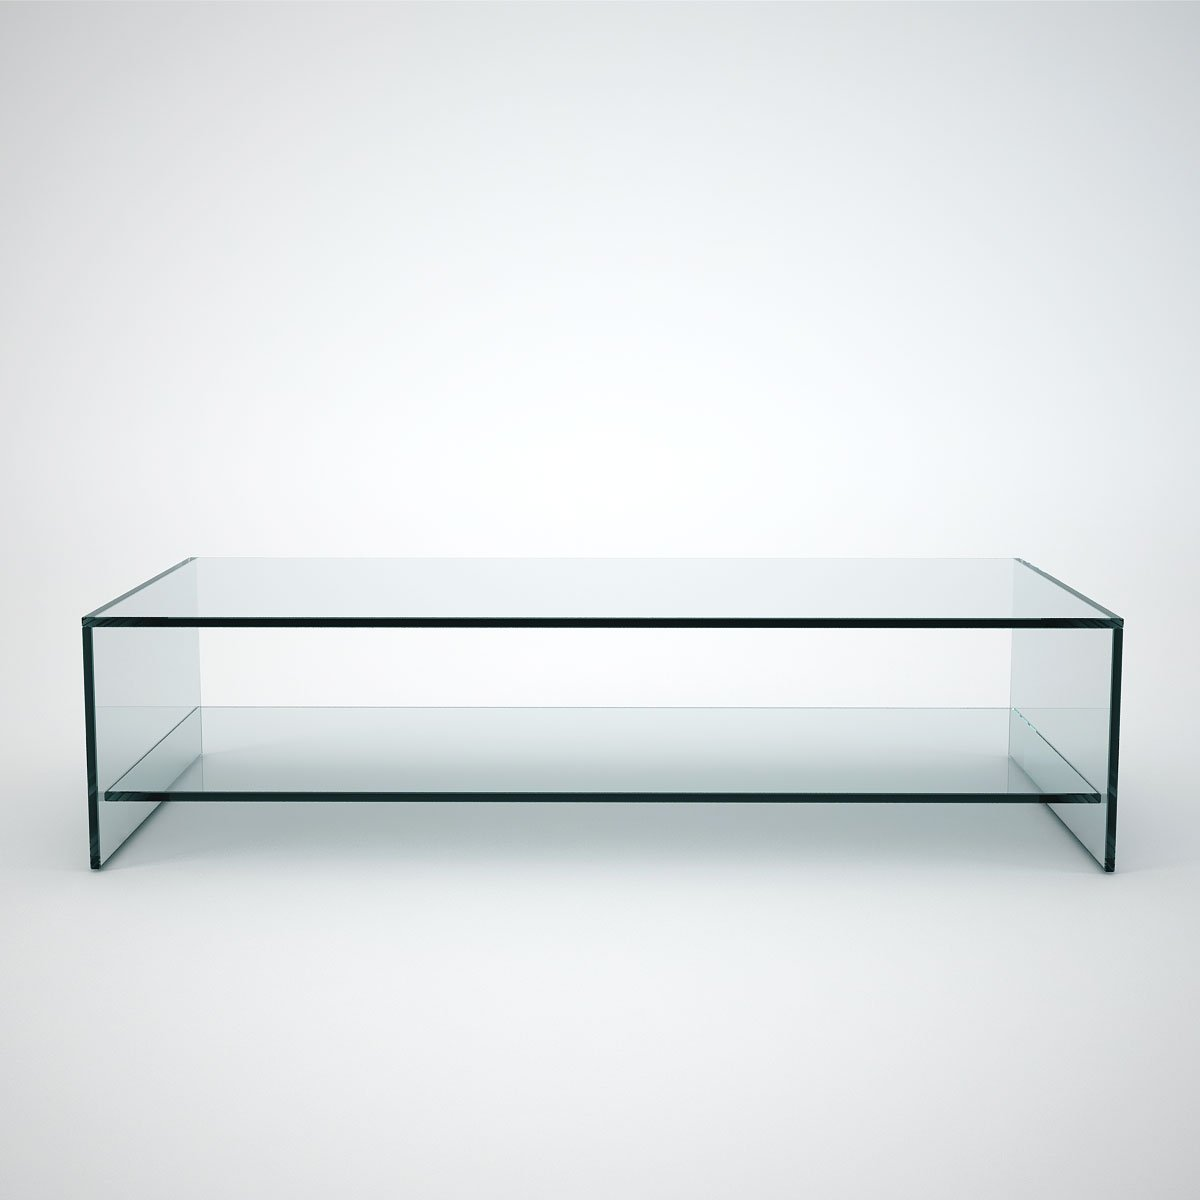 Judd Rectangle Glass Coffee Table with Shelf Klarity  : Rectangle glass coffee table with shelf from glassfurniture.co.uk size 1200 x 1200 jpeg 11kB